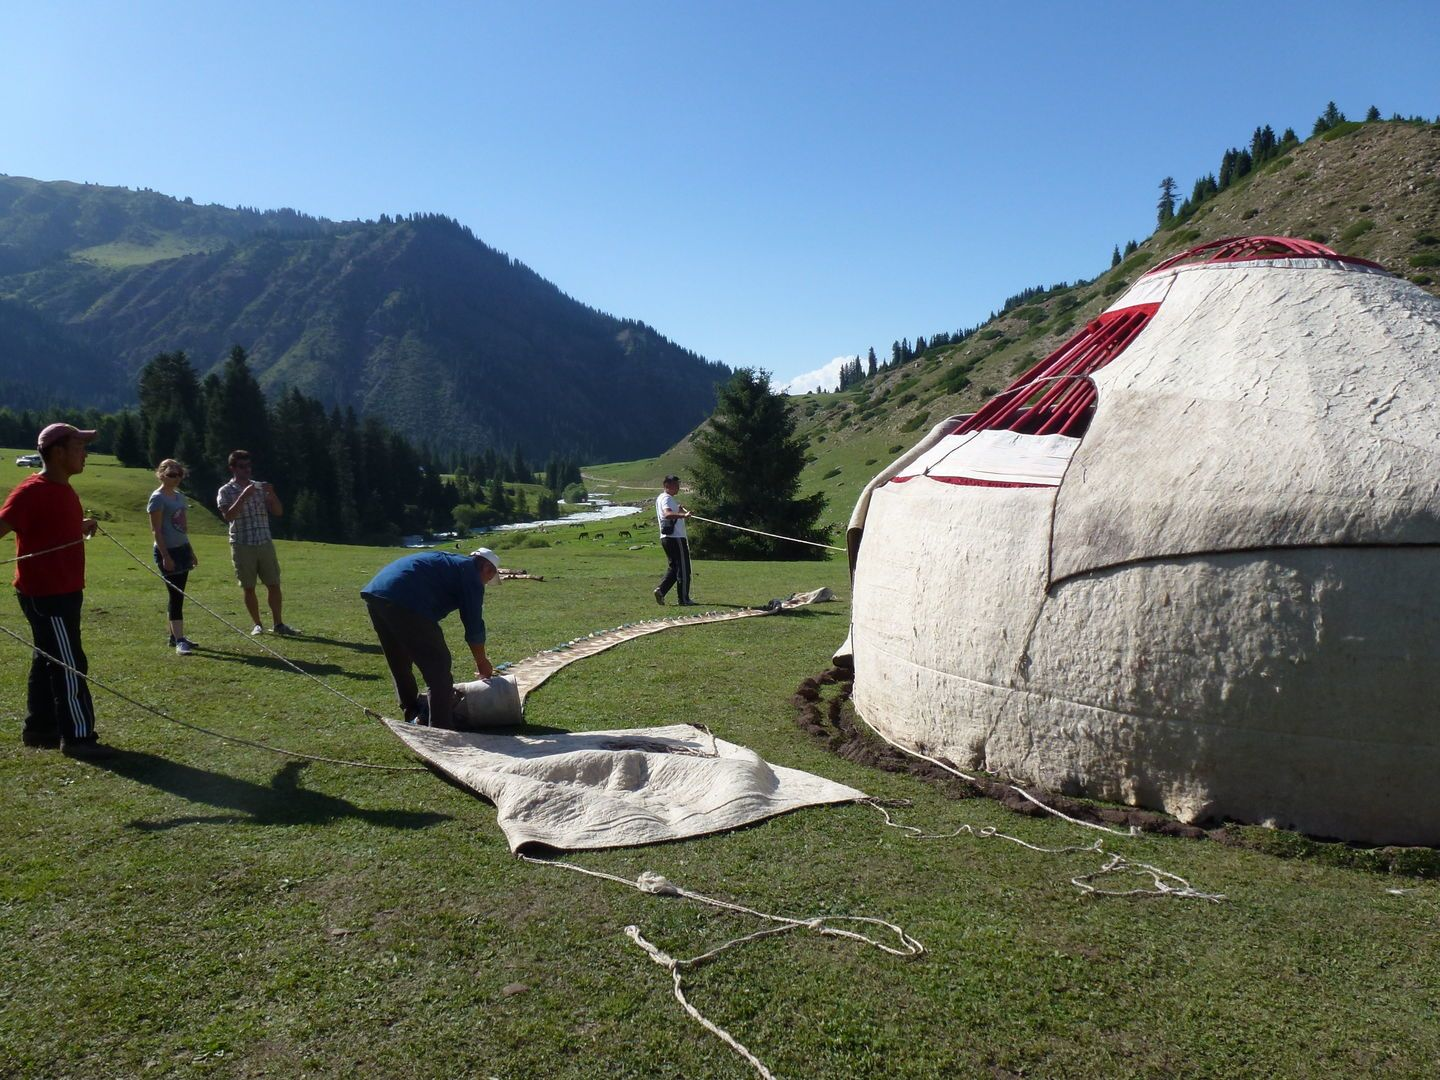 layering the yurt structure with wool felt